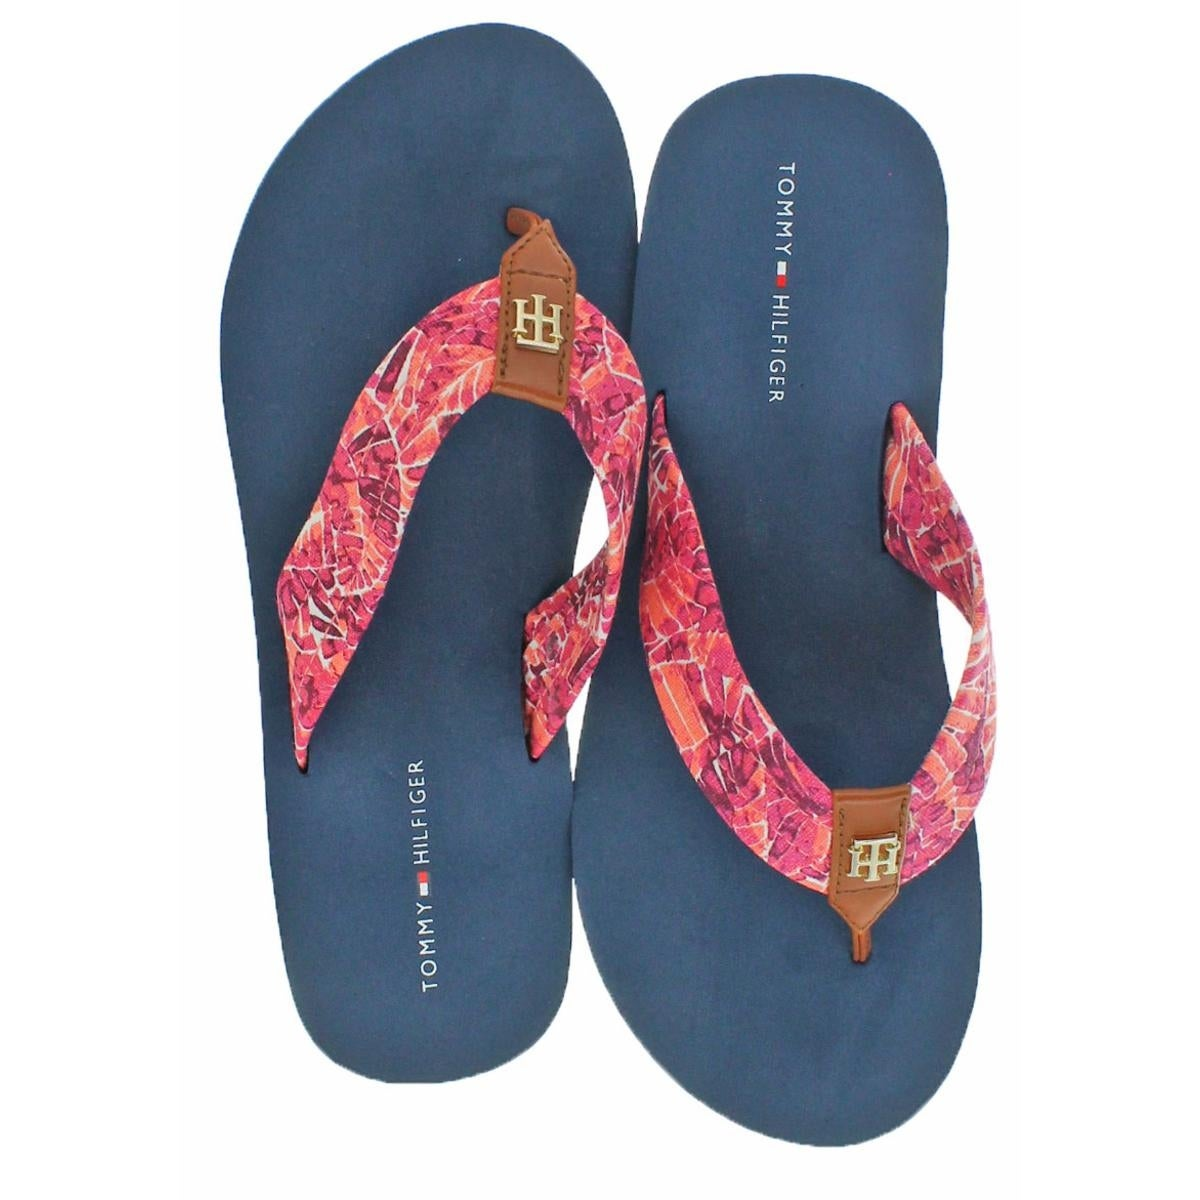 2fc2ea6b18d1 Shop Tommy Hilfiger Womens Flip-Flops Lightly Padded EVA - Free Shipping On  Orders Over  45 - Overstock - 23562385